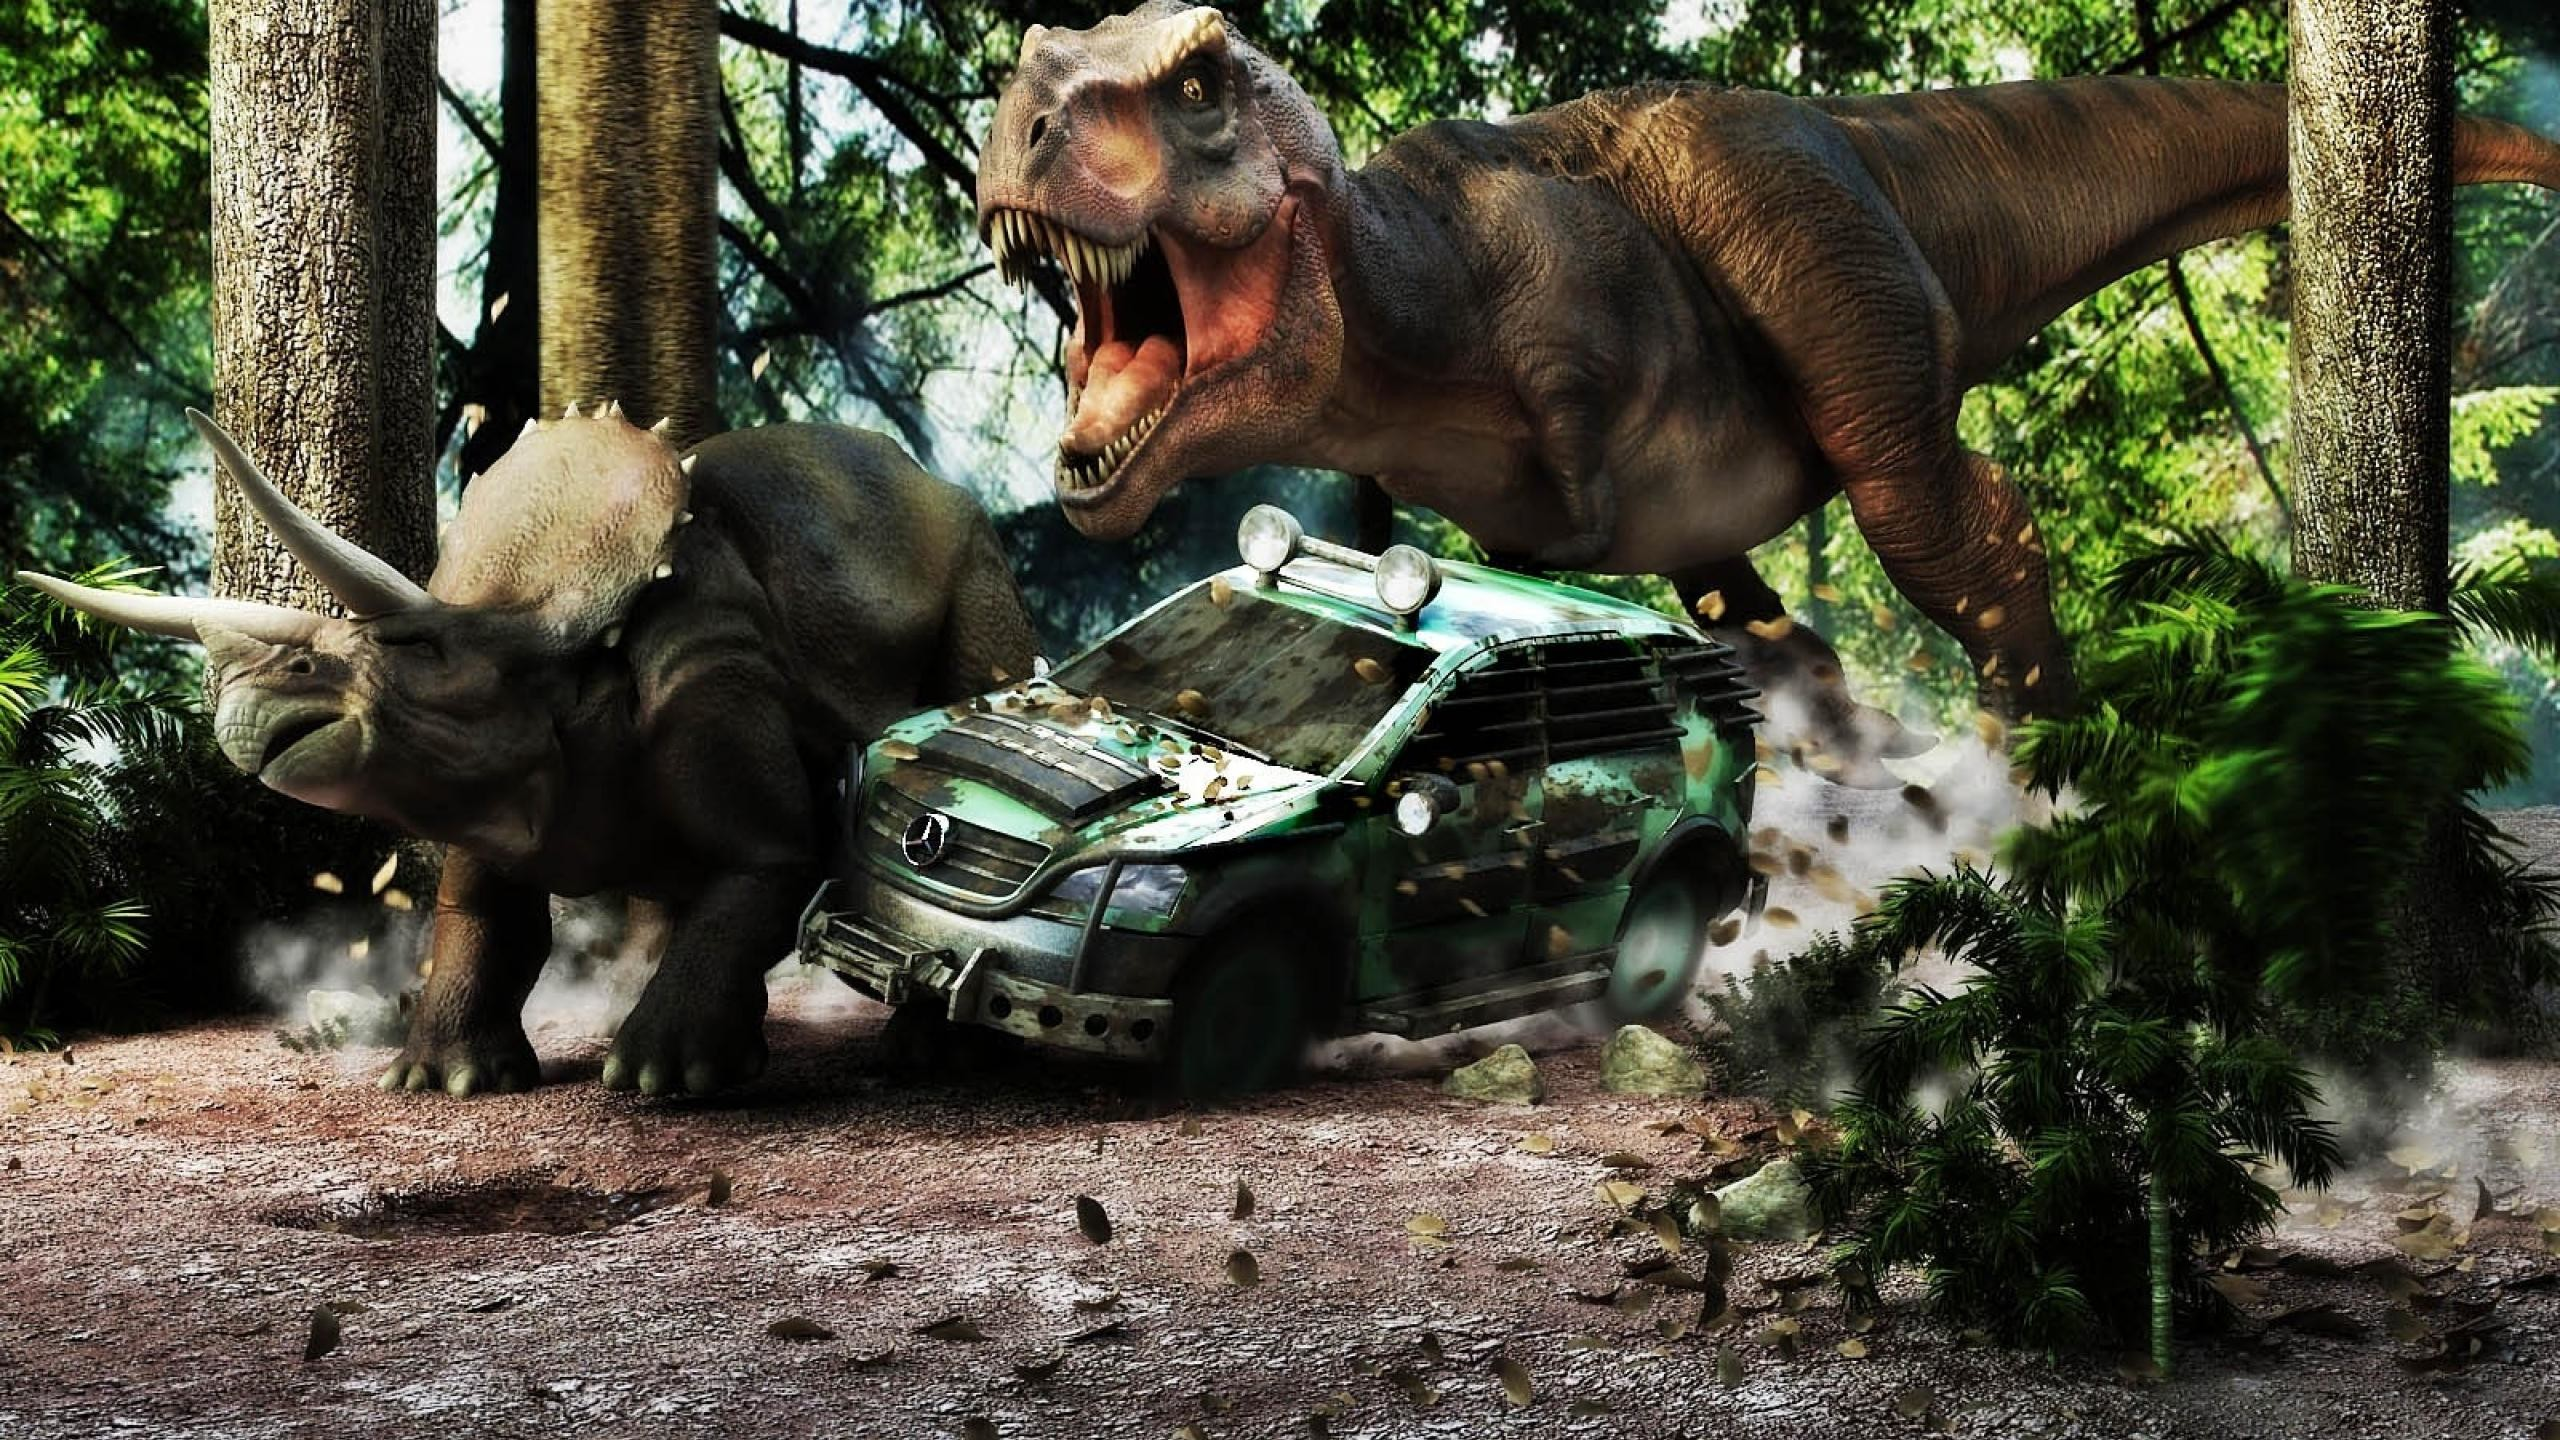 2560x1440 Free Jurassic Park T-rex Wallpaper Free Â« Long Wallpapers ...